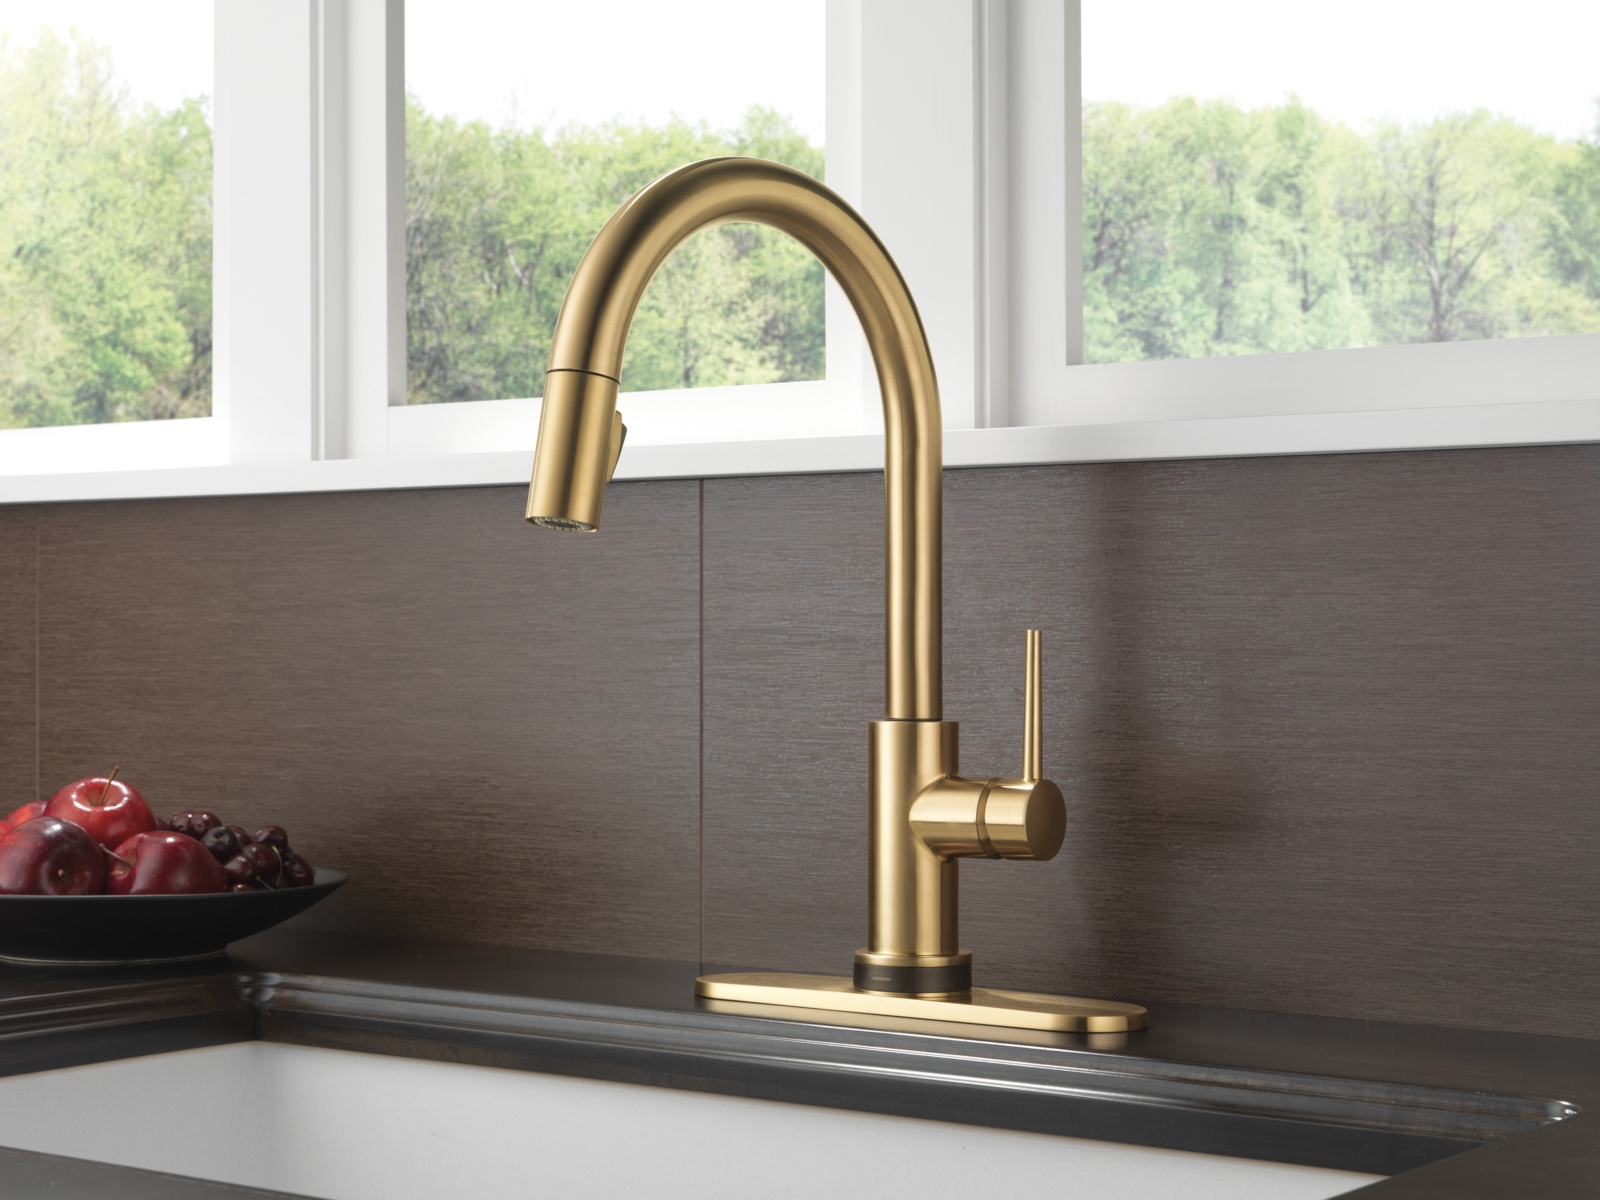 Ideas, delta brushed bronze kitchen faucets delta brushed bronze kitchen faucets trinsic kitchen collection kitchen faucets pot fillers and 1600 x 1200  .